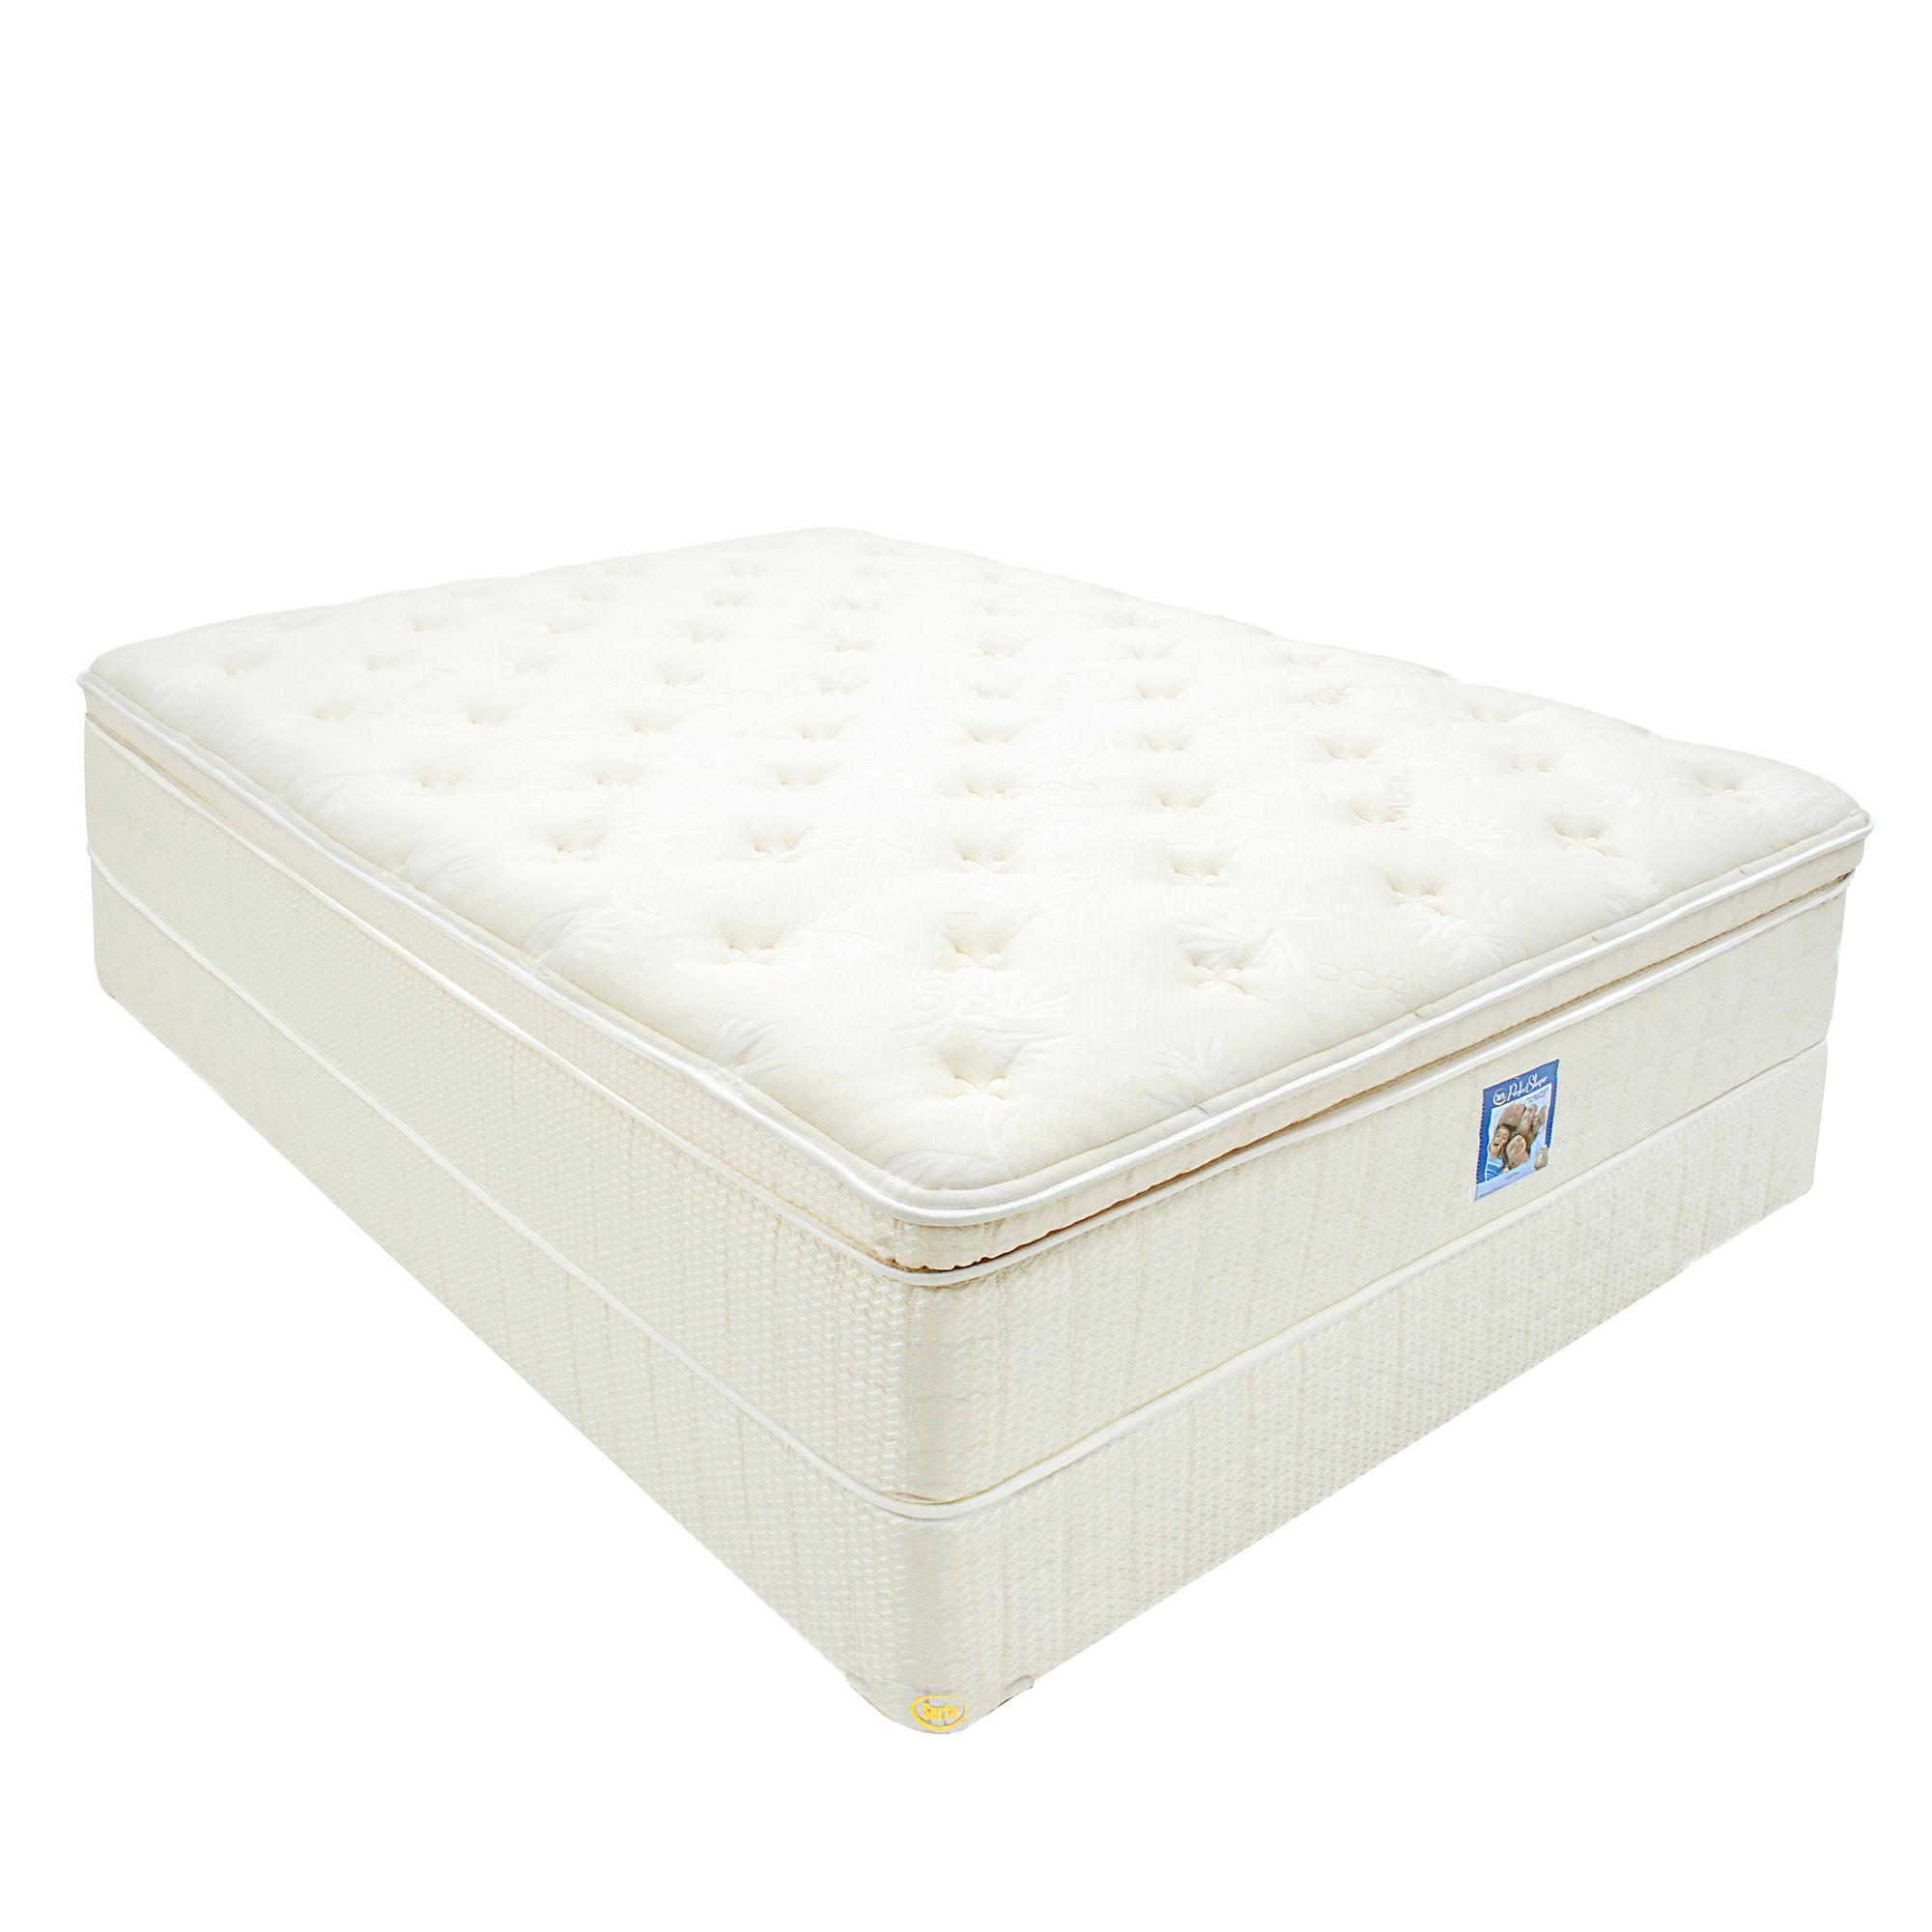 Perfect-Sleeper-Reese-Limited-Firm-II-EuroTop-Twin-XL-Mattress